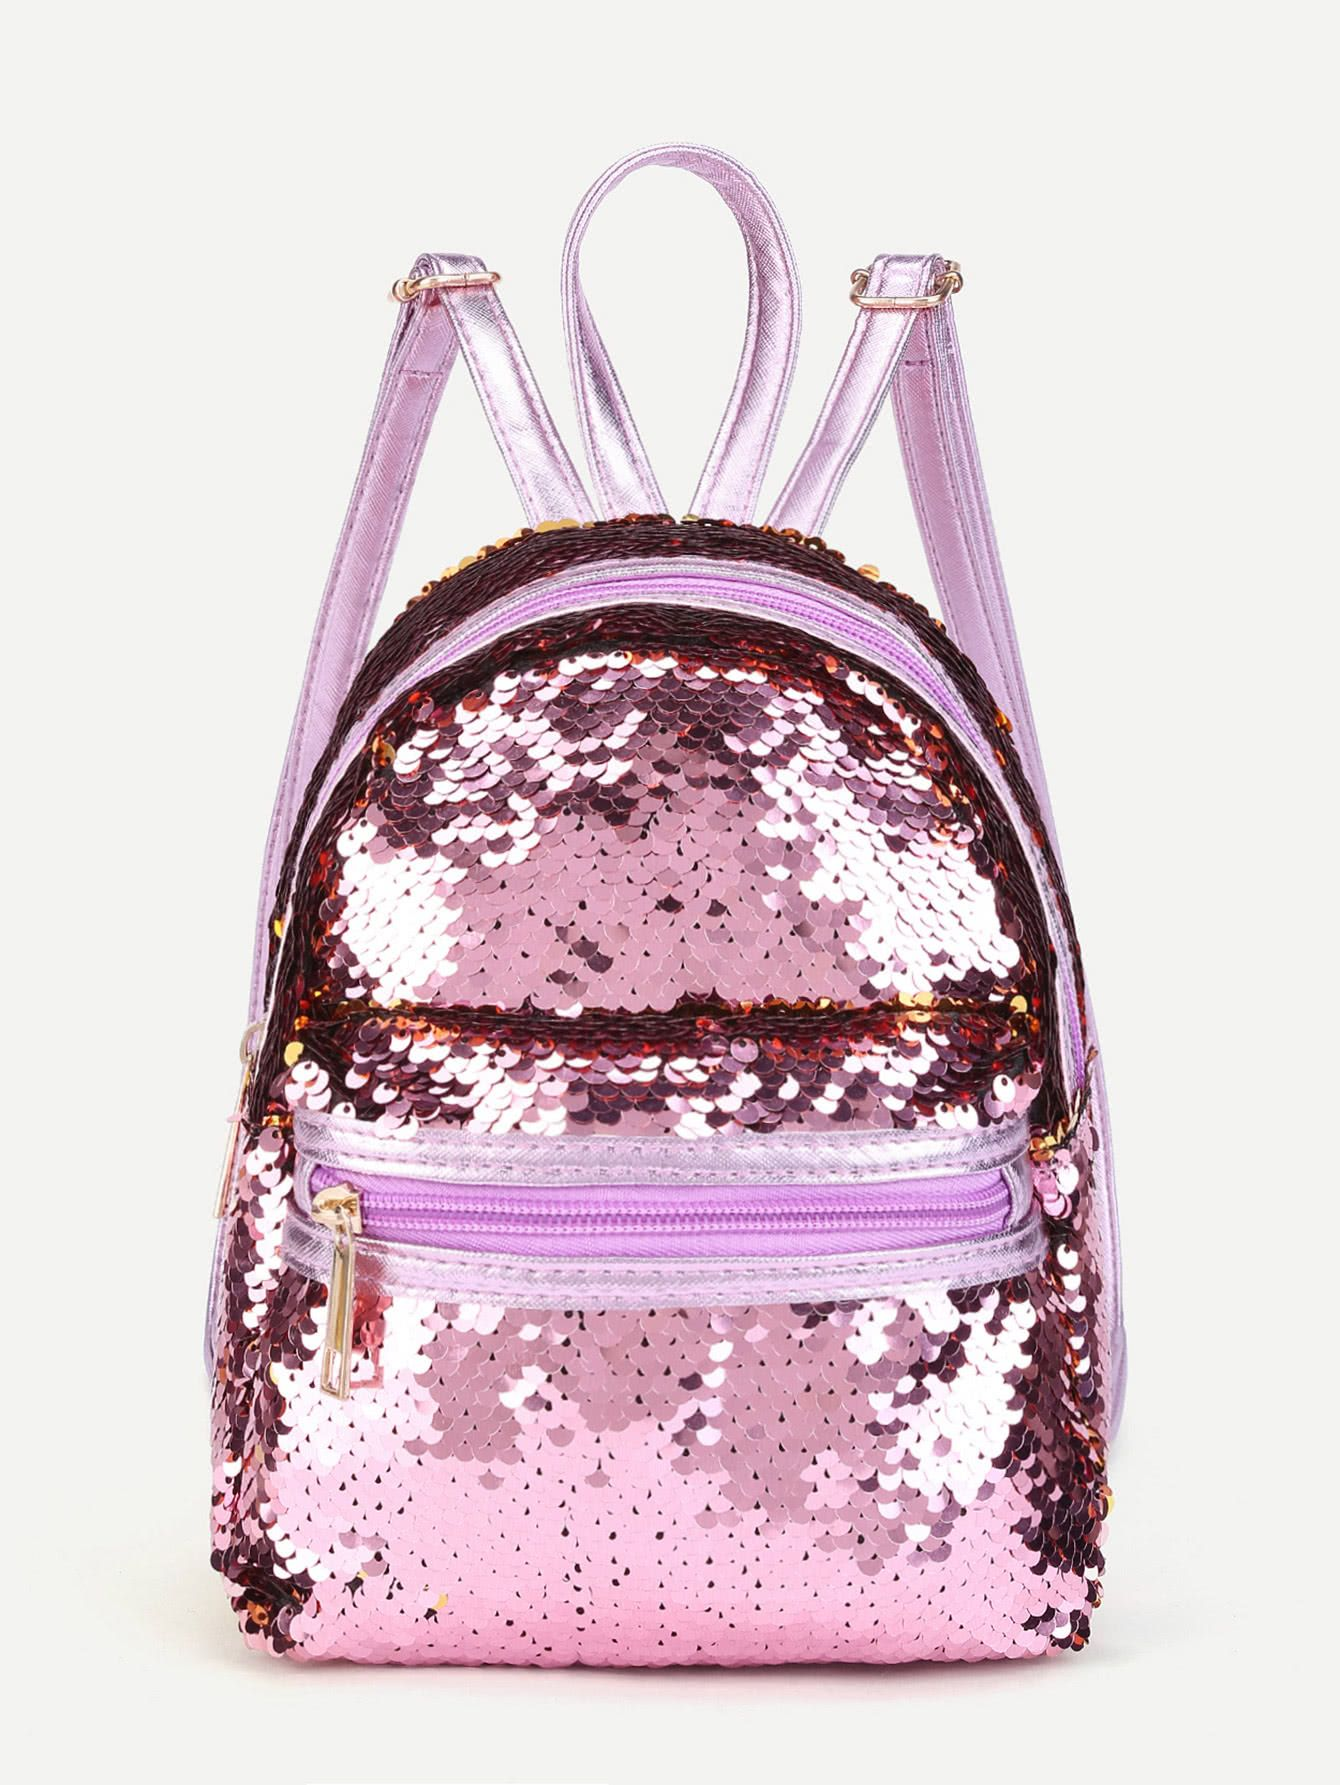 96618f00e1 Shop Sequin Overlay Zipper Front Backpack online. SheIn offers Sequin  Overlay Zipper Front Backpack & more to fit your fashionable needs.